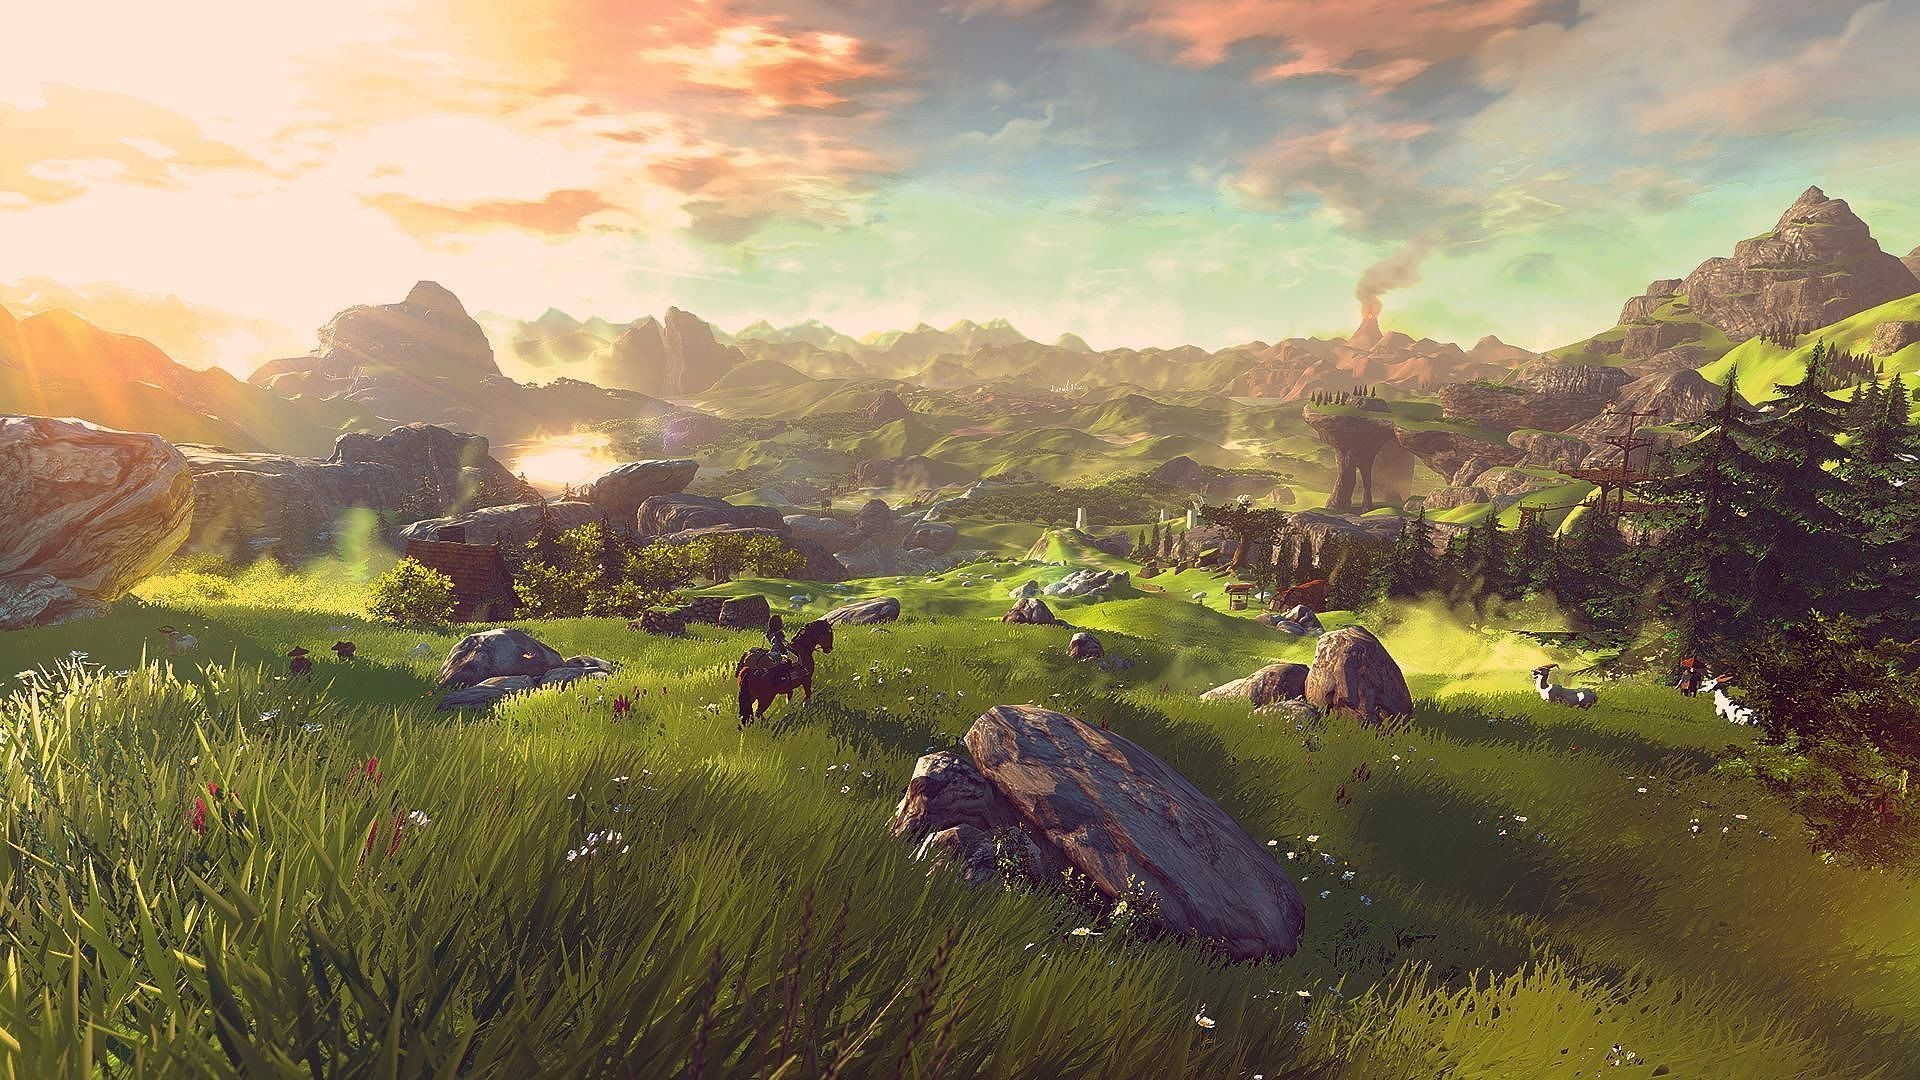 Zelda Breath Of The Wild Wallpaper Hd Posted By Ethan Walker